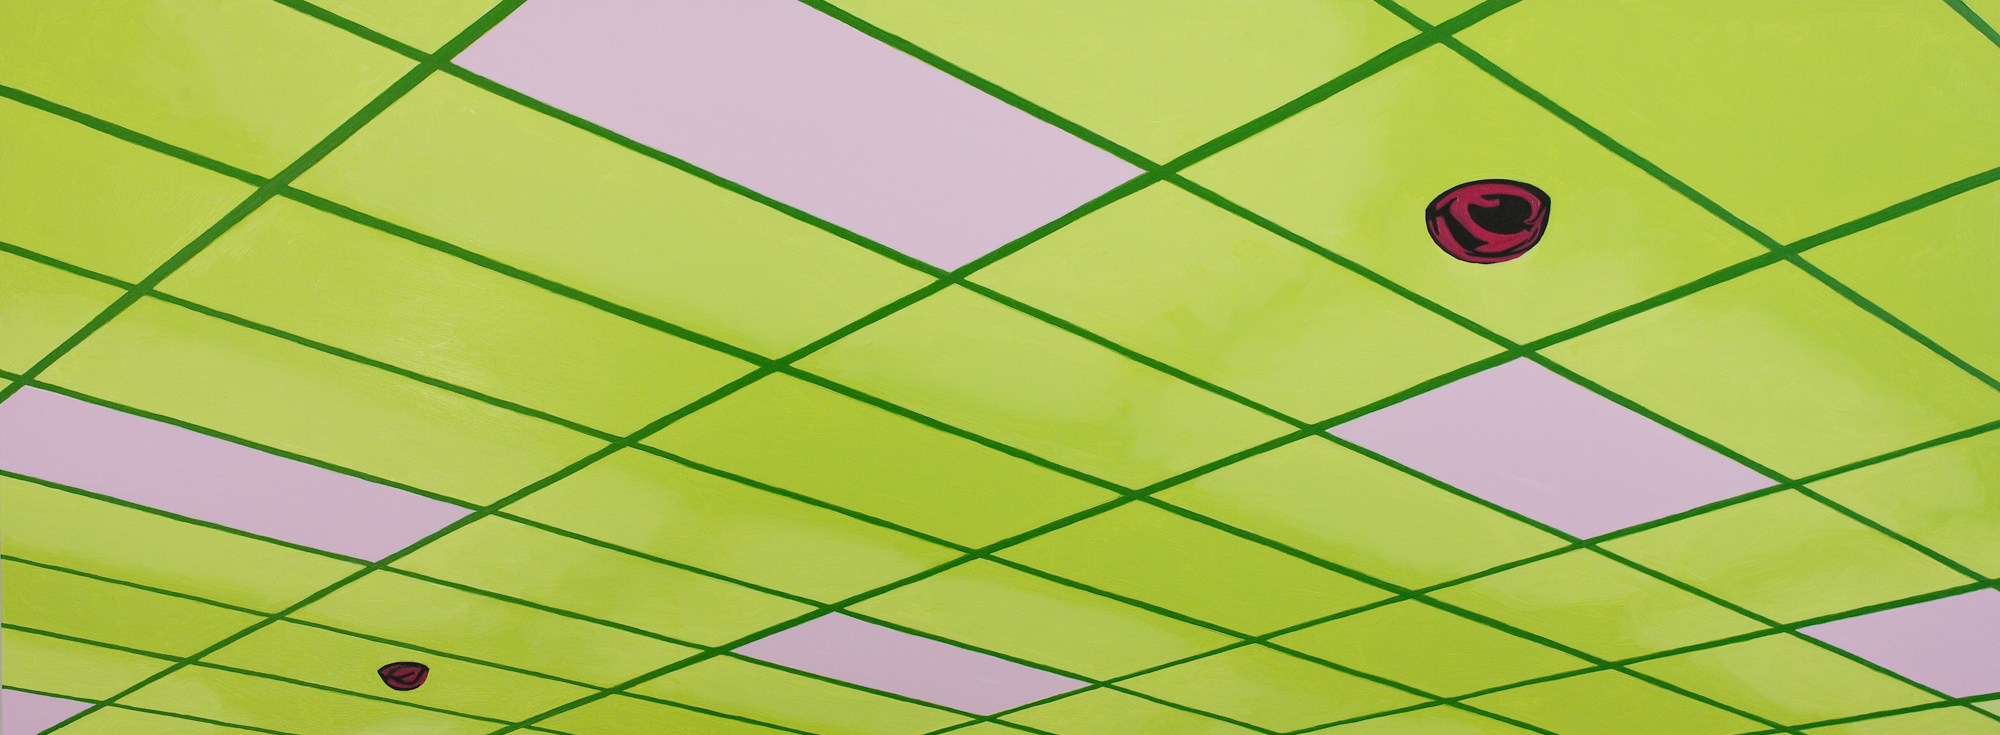 Ceiling #2, 2019, Oil on Panel, 12 X 32 inches